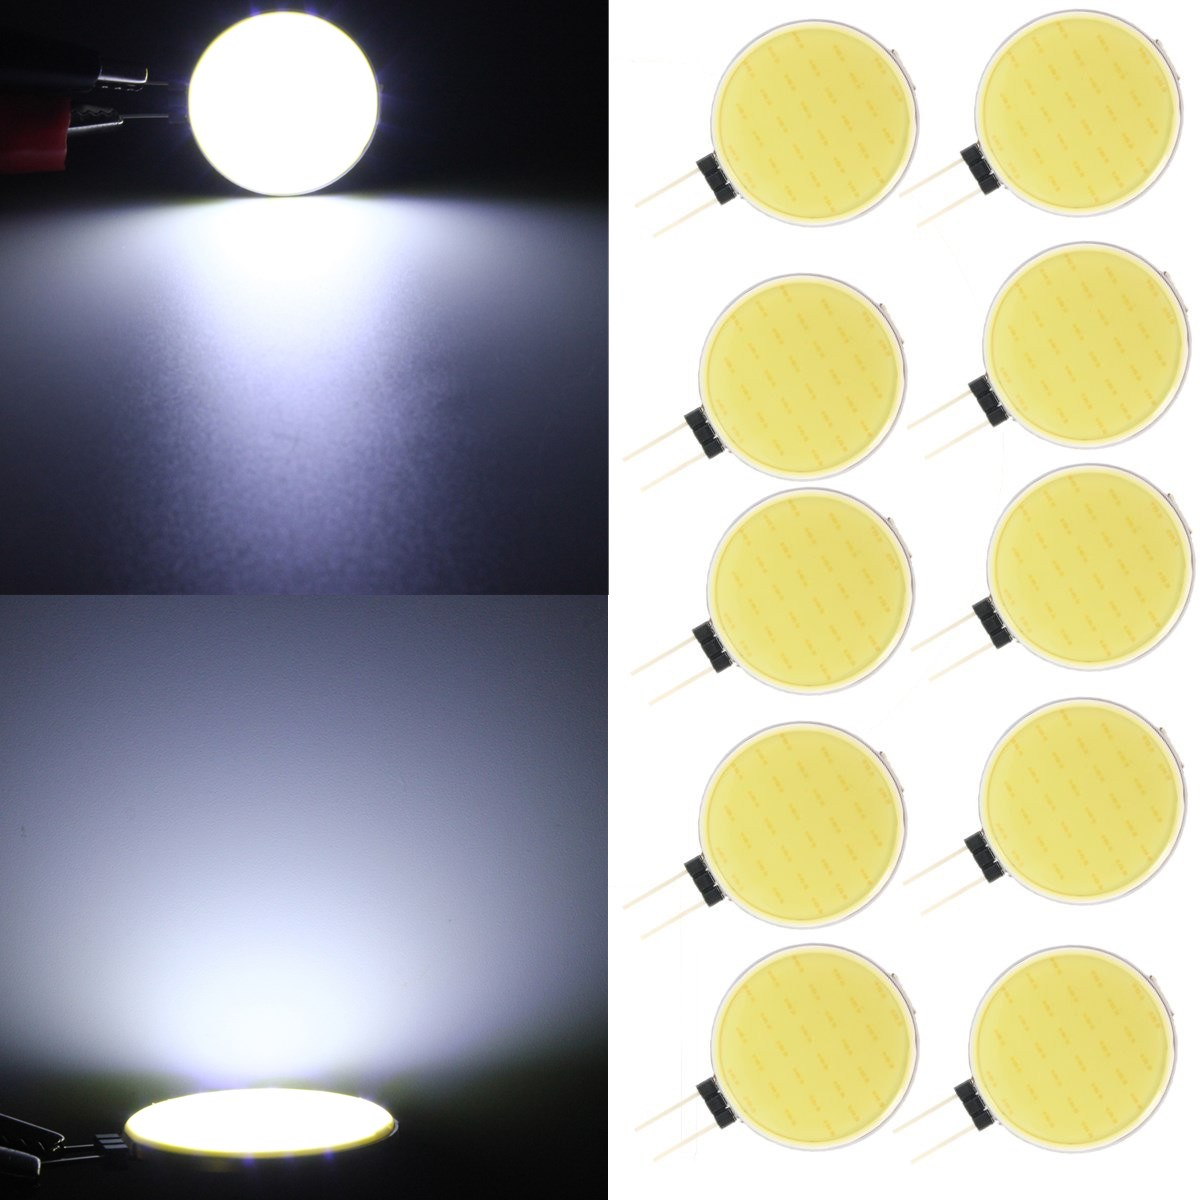 10X DC12V G4 4.5W Pure White 30 LED COB Light Bulb Lamp for Home Decoration